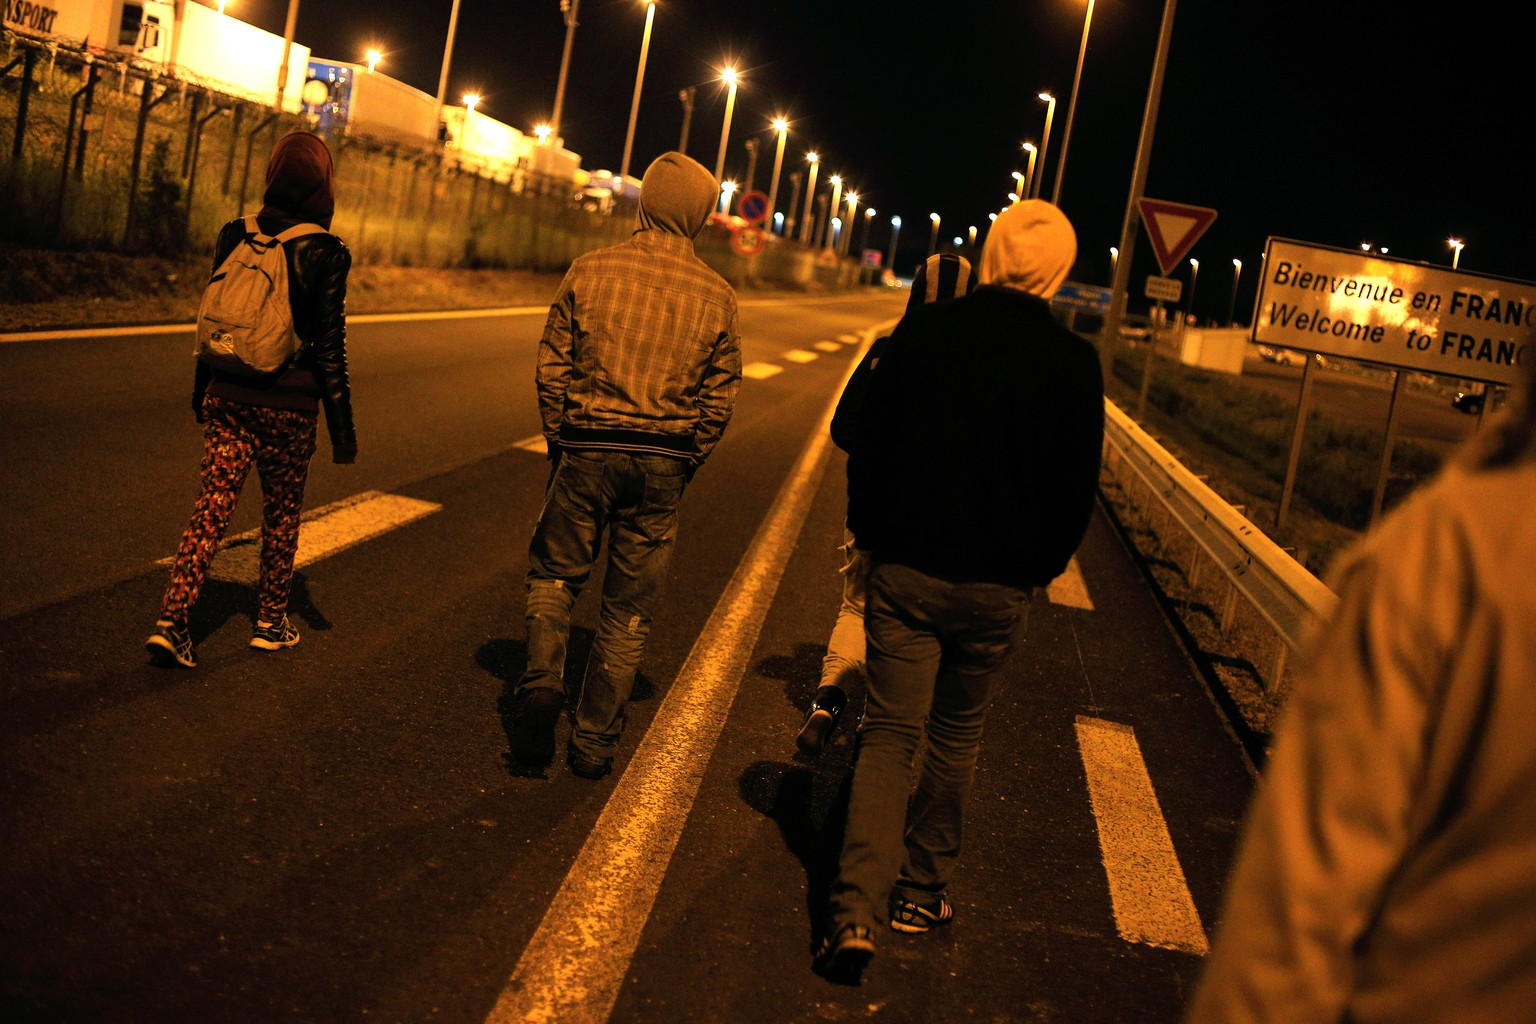 Migrants walk on a road outside the Eurotunnel area, in Calais, northern France, Wednesday, July 29, 2015. About 2,100 migrants tried to storm the area surrounding the Eurotunnel early Tuesday before being repelled by police, an official in the northern French port of Calais said. (AP Photo/Thibault Camus)